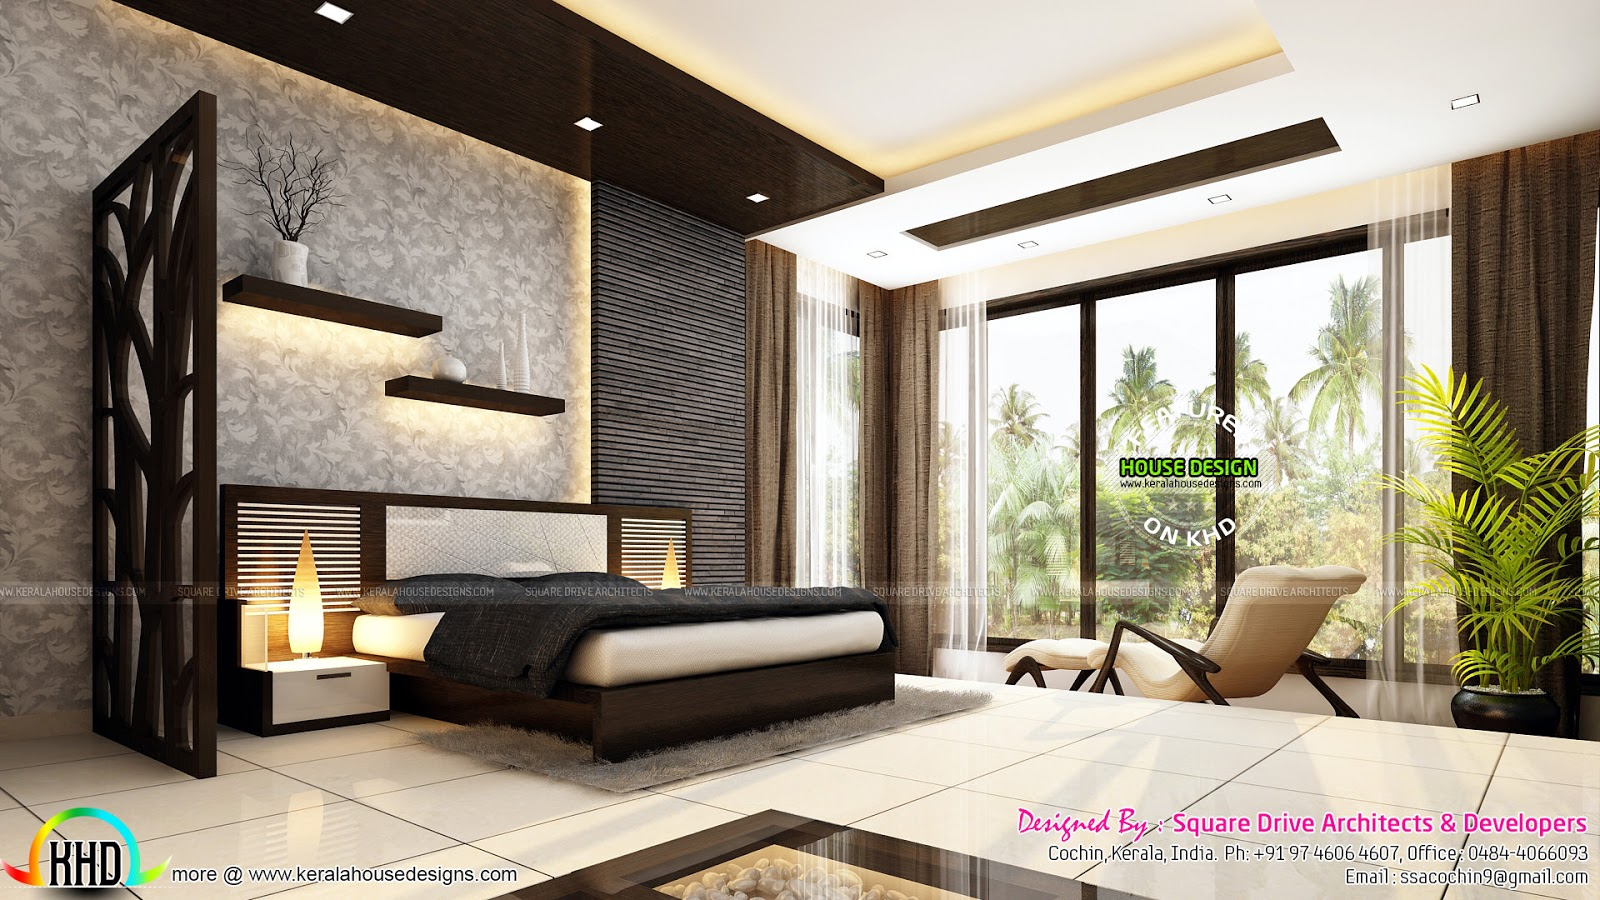 Very beautiful modern interior designs kerala home for Bedroom designs images